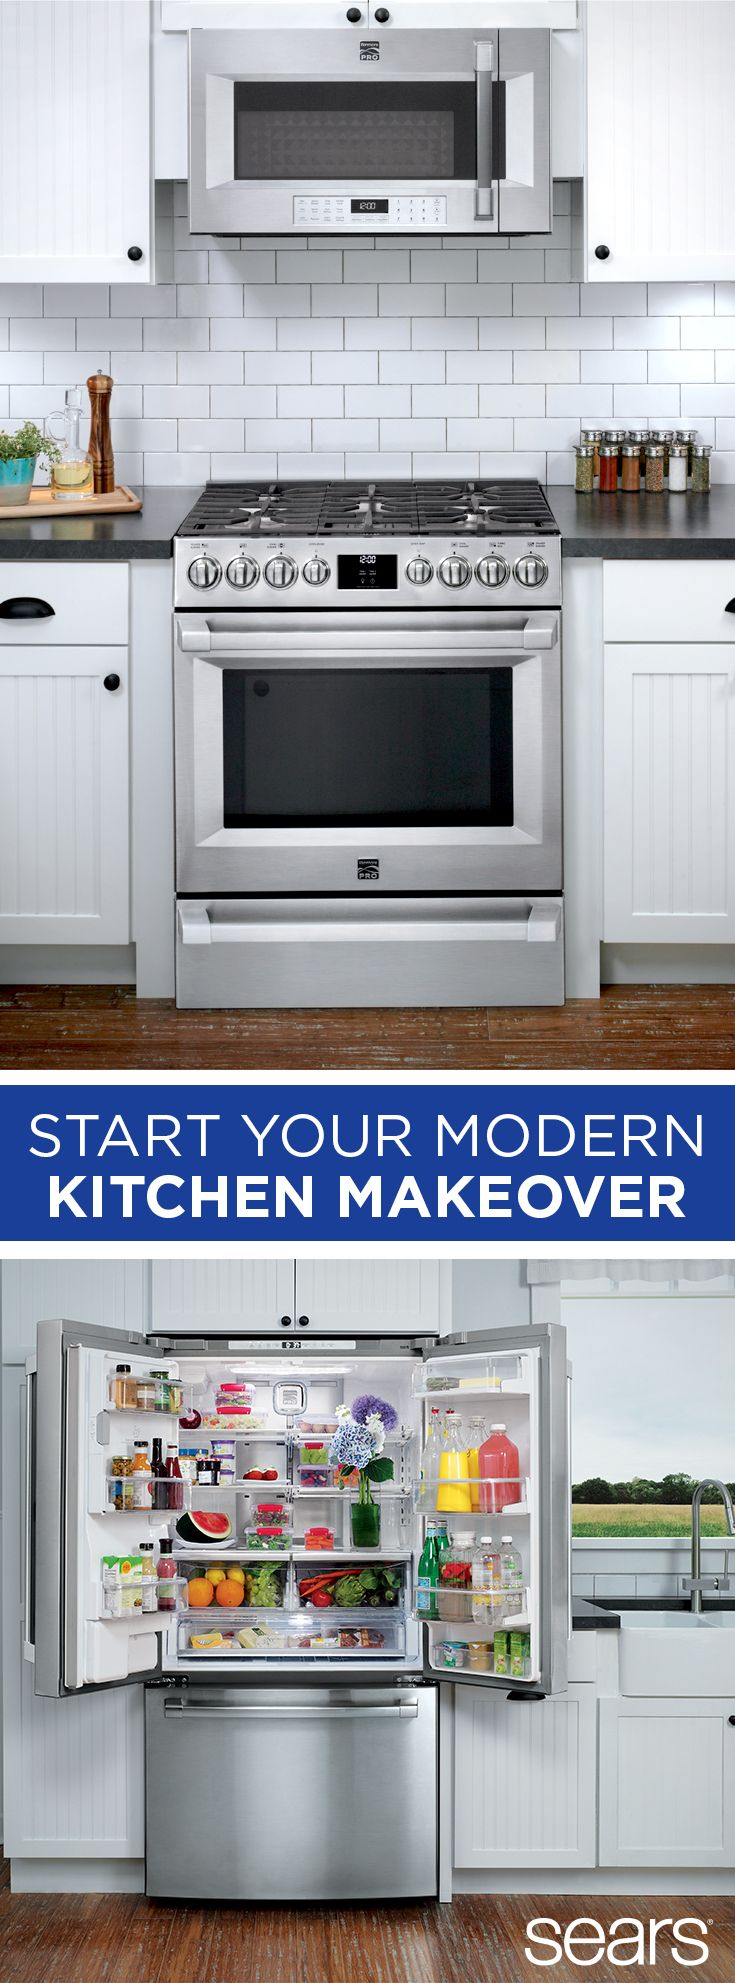 Stainless steel appliances are a timeless choice. Whether you're moving into a new home or remodeling to create a dream kitchen, choose Sears appliances. We love the space saving Kenmore Elite bottom freezer refrigerator for organized food storage that fits more fresh ingredients. For cooking and baking, opt for the Kenmore Pro 72583 gas range. With five burners and a true convection oven, it's both beautiful and functional. Discover more at Sears and shop appliances bundles online and in…